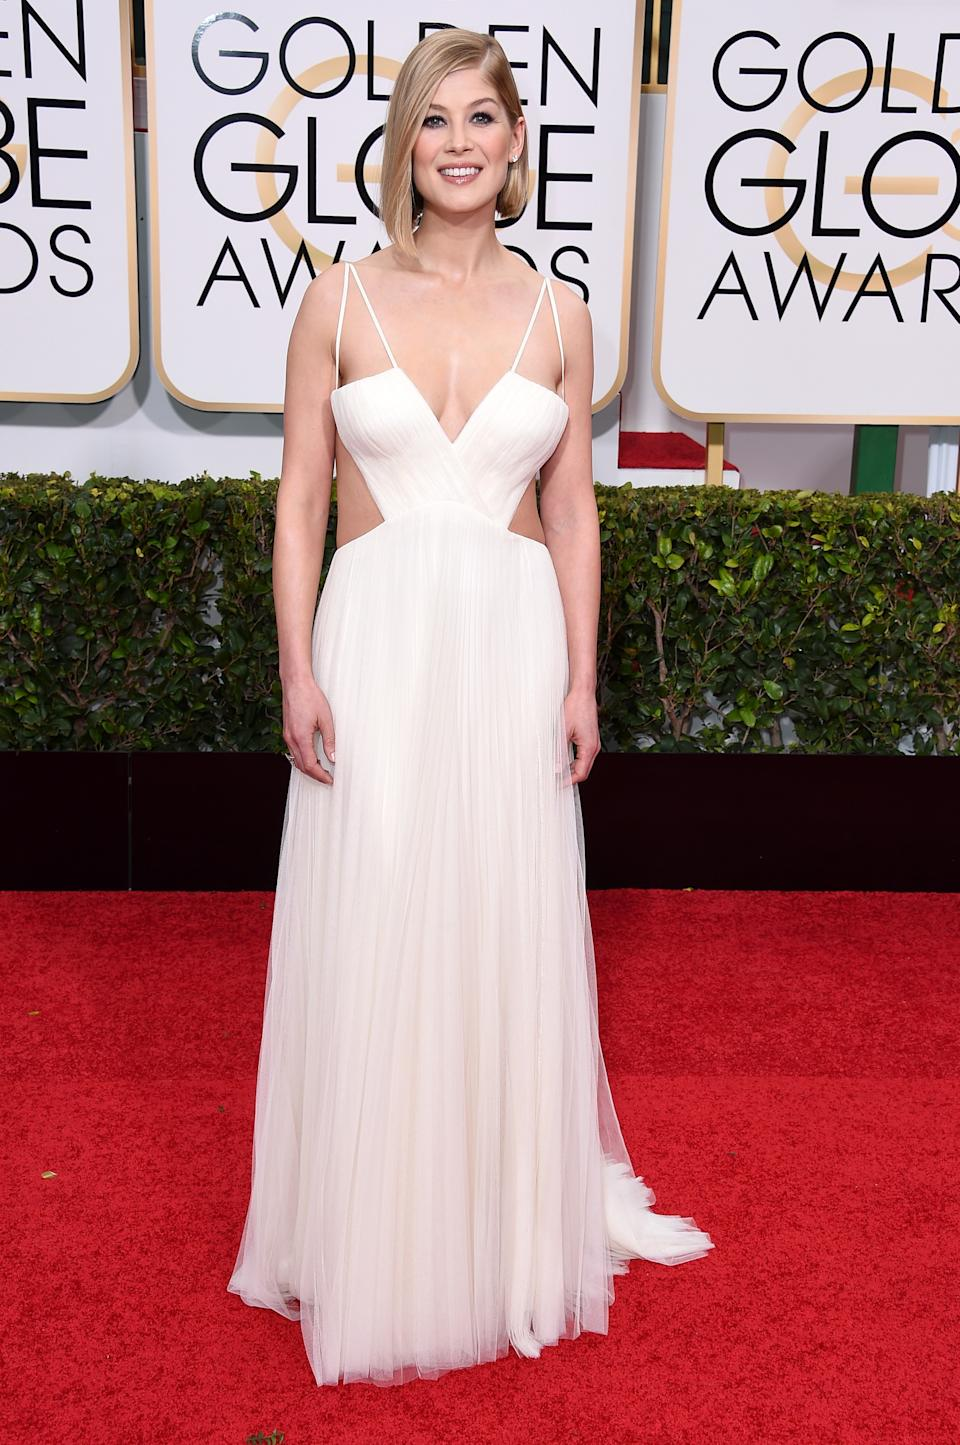 "<p>Rosamund Pike graced the 2015 Golden Globes in this angelic, white, Vera Wang gown after being nominated for best actress in a motion picture drama for her role in ""Gone Girl."" (Image via Getty Images)</p>"